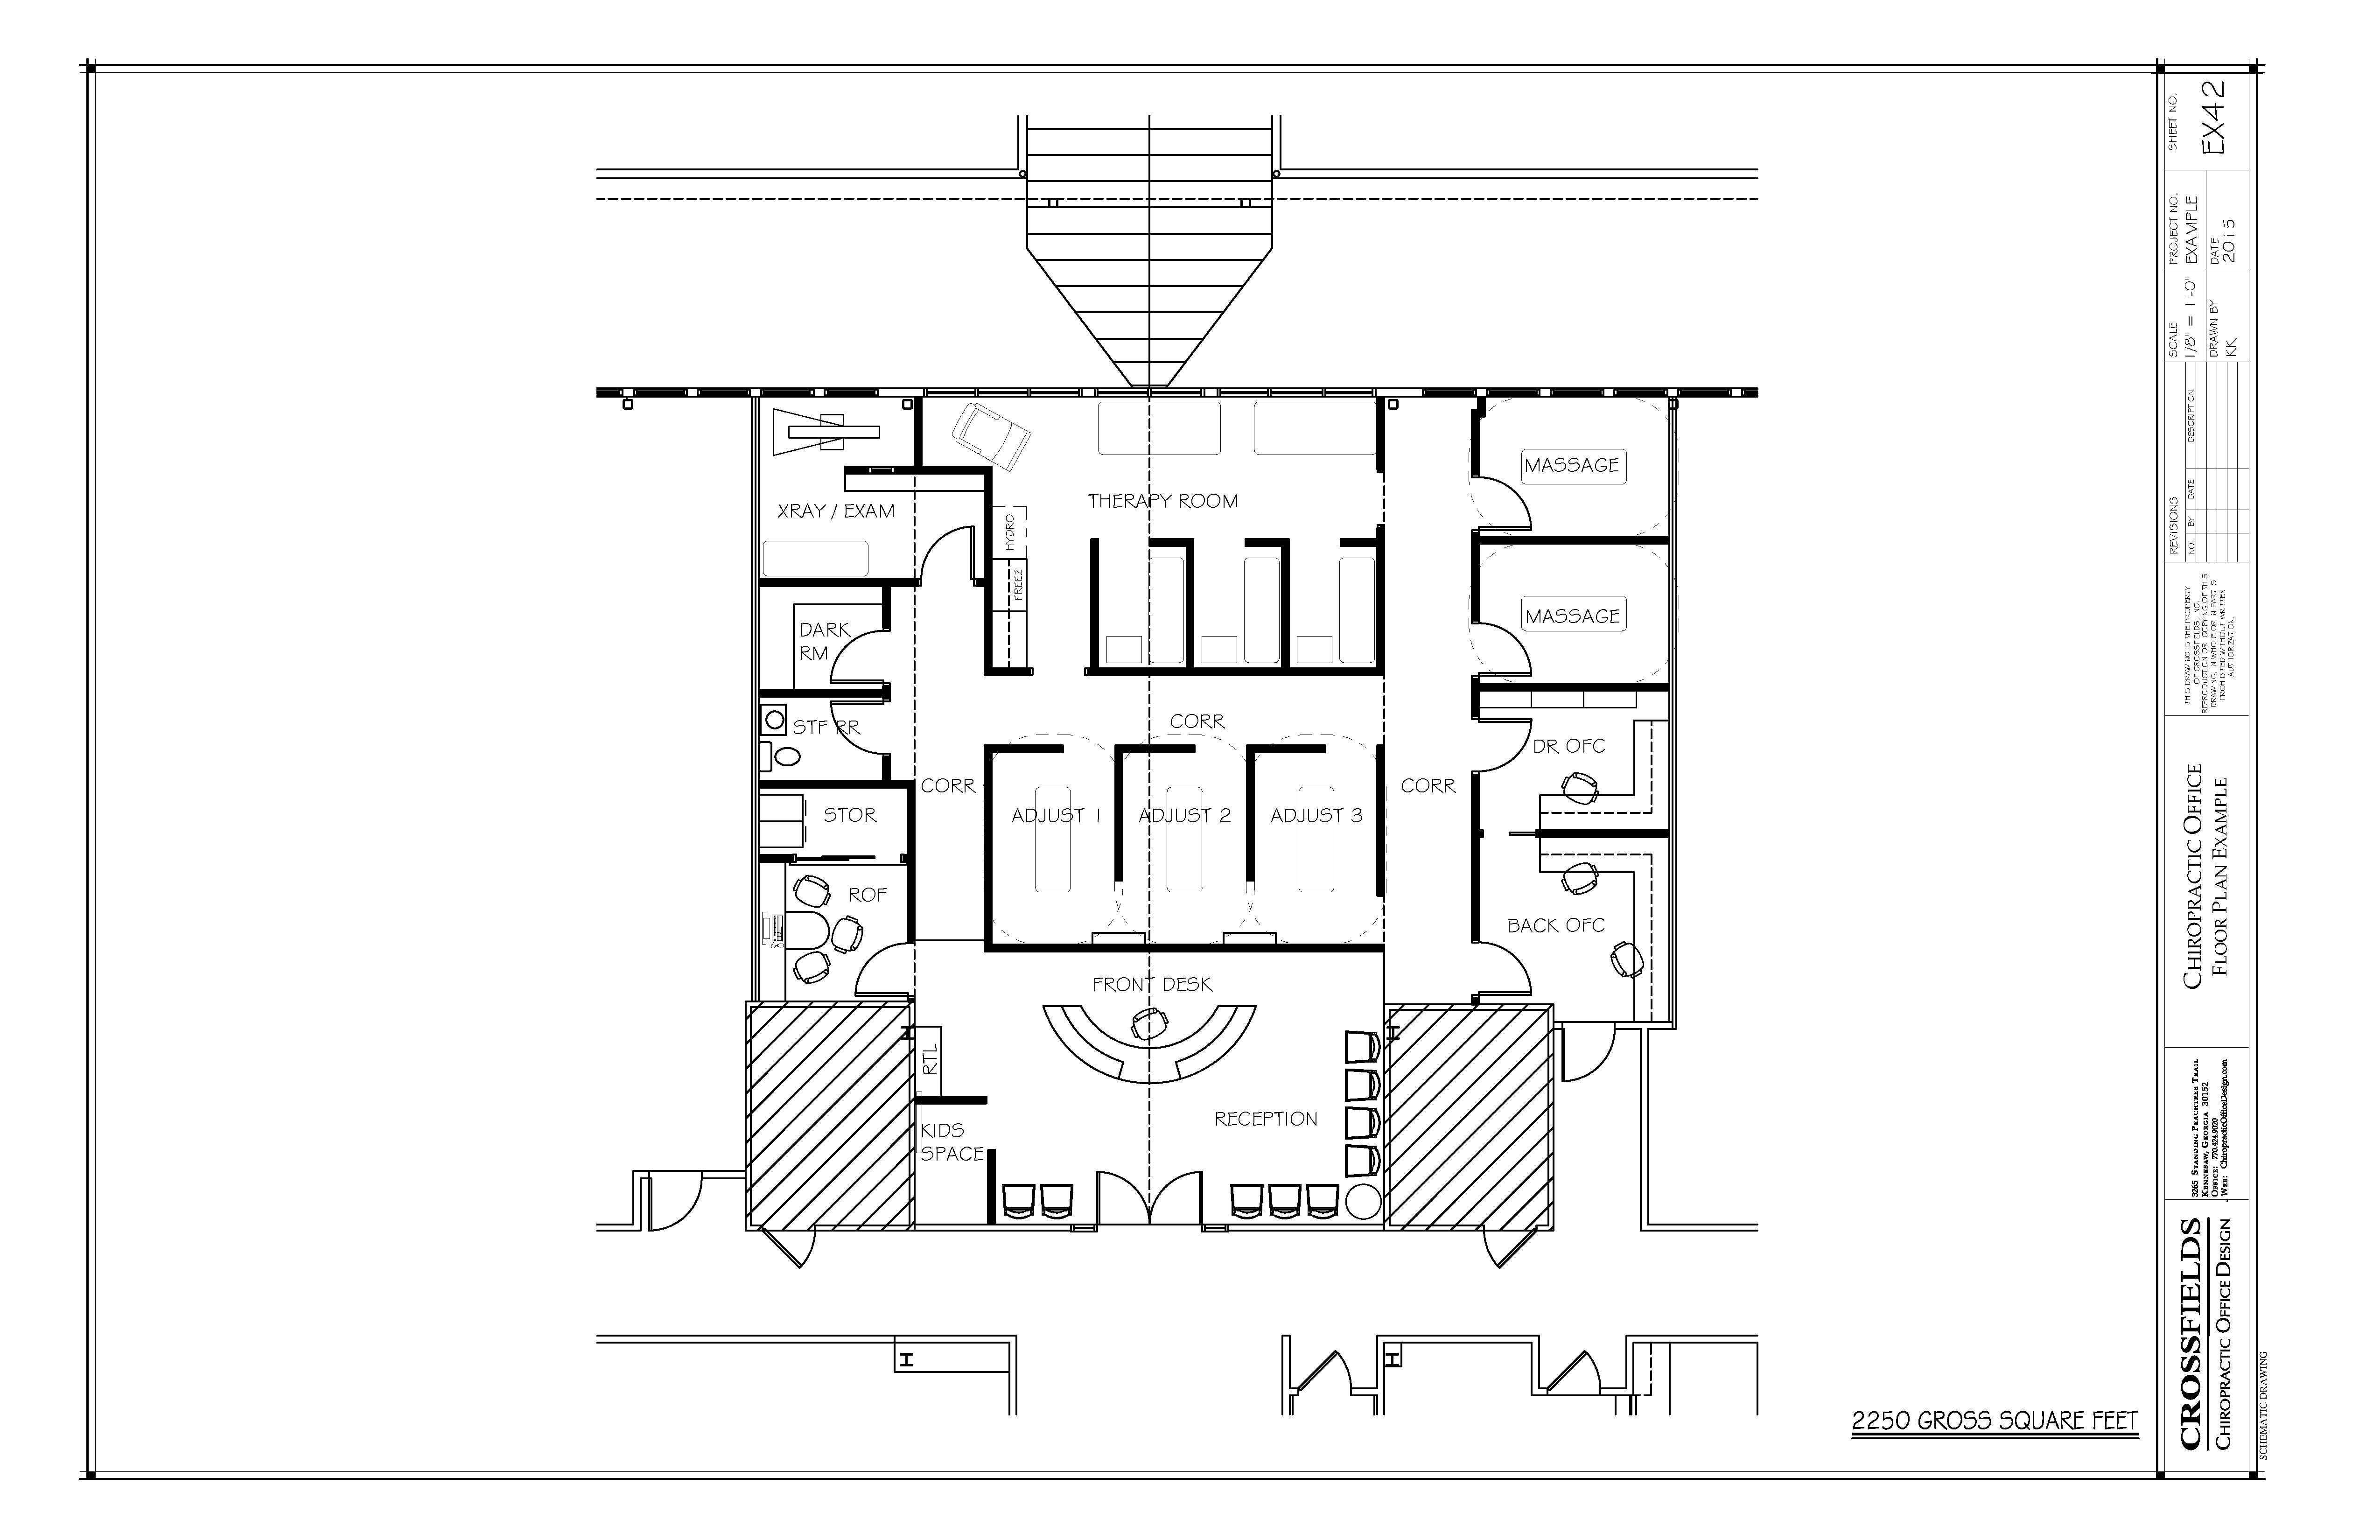 office room plan. #Chiropractor #office #floorplan With Therapy And Massage Rooms. 2,250 Square Feet Office Room Plan E